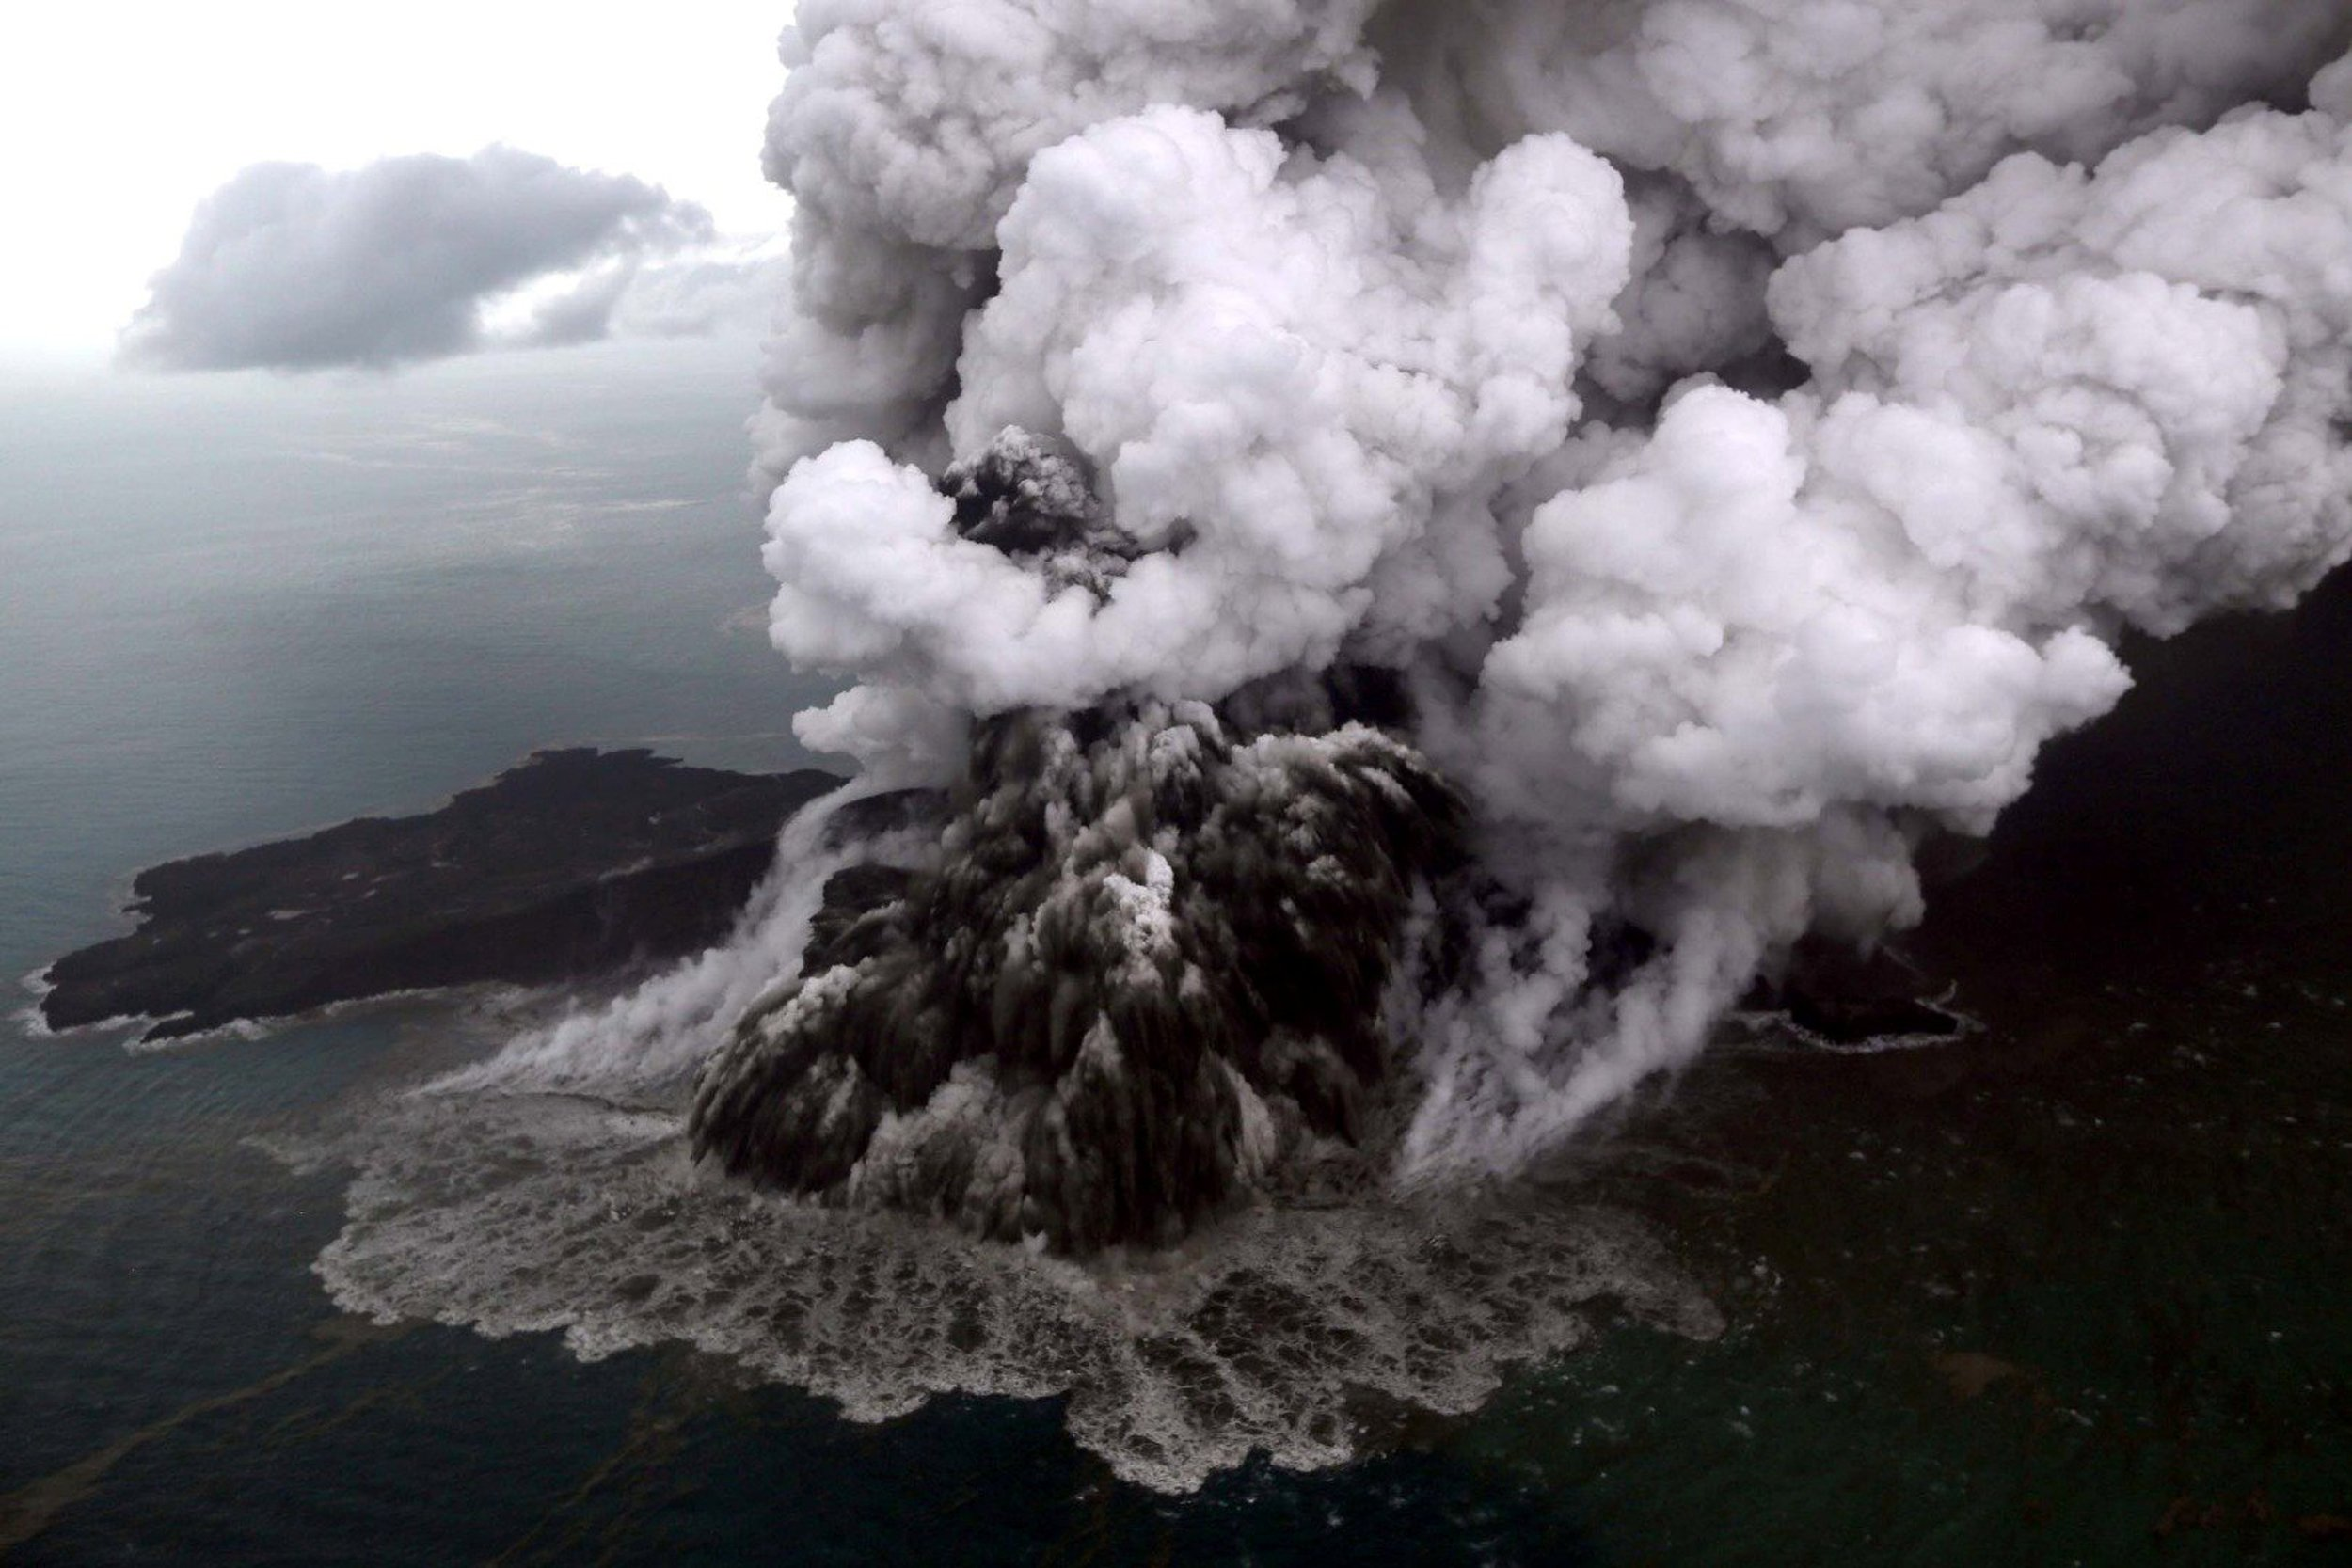 Image: An aerial view of Anak Krakatau volcano during an eruption at Sunda strait in South Lampung